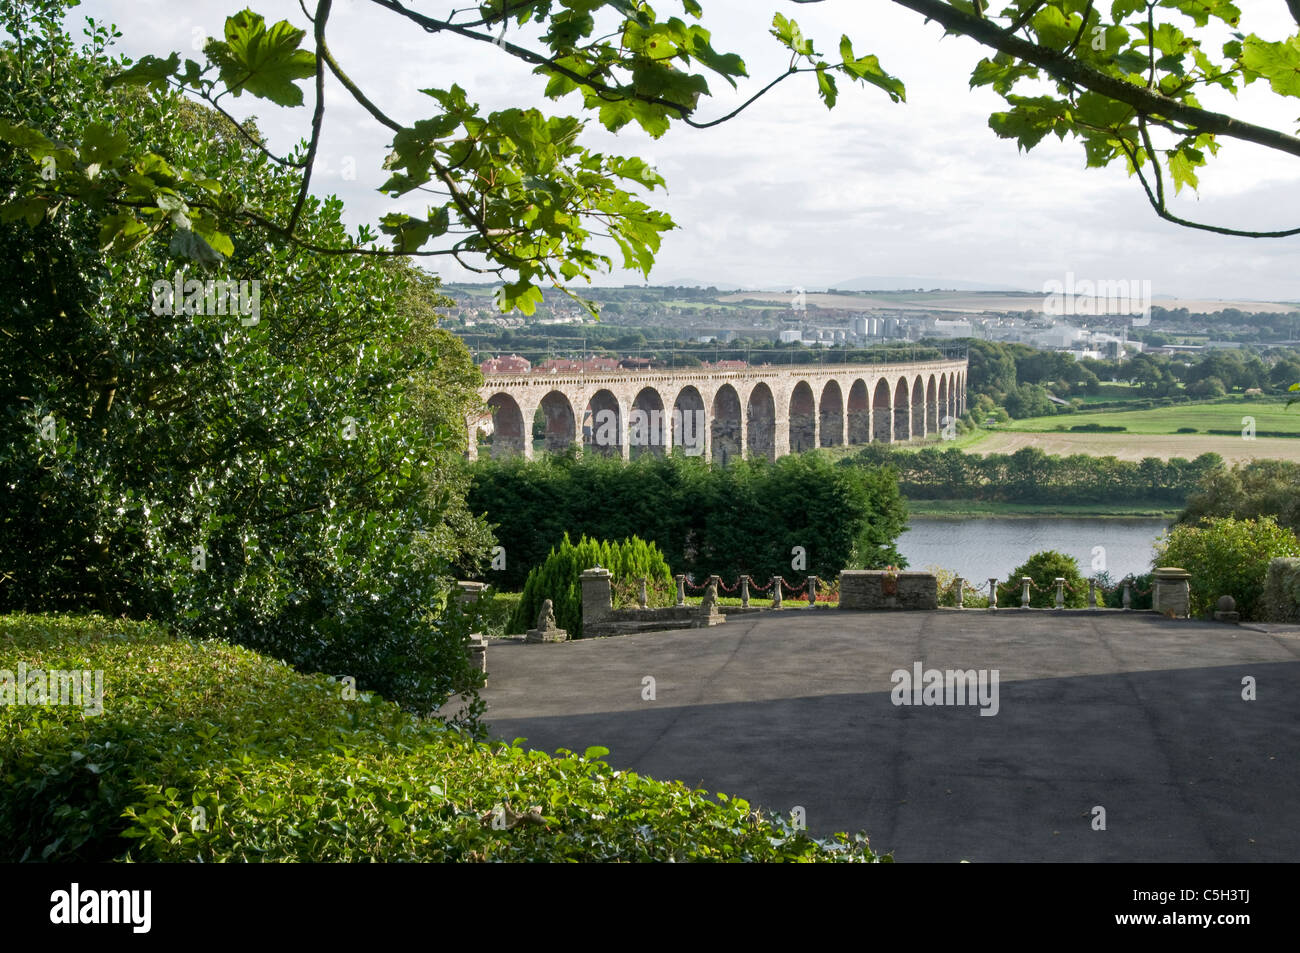 Railway viaduct at Berwick on Tweed - Stock Image